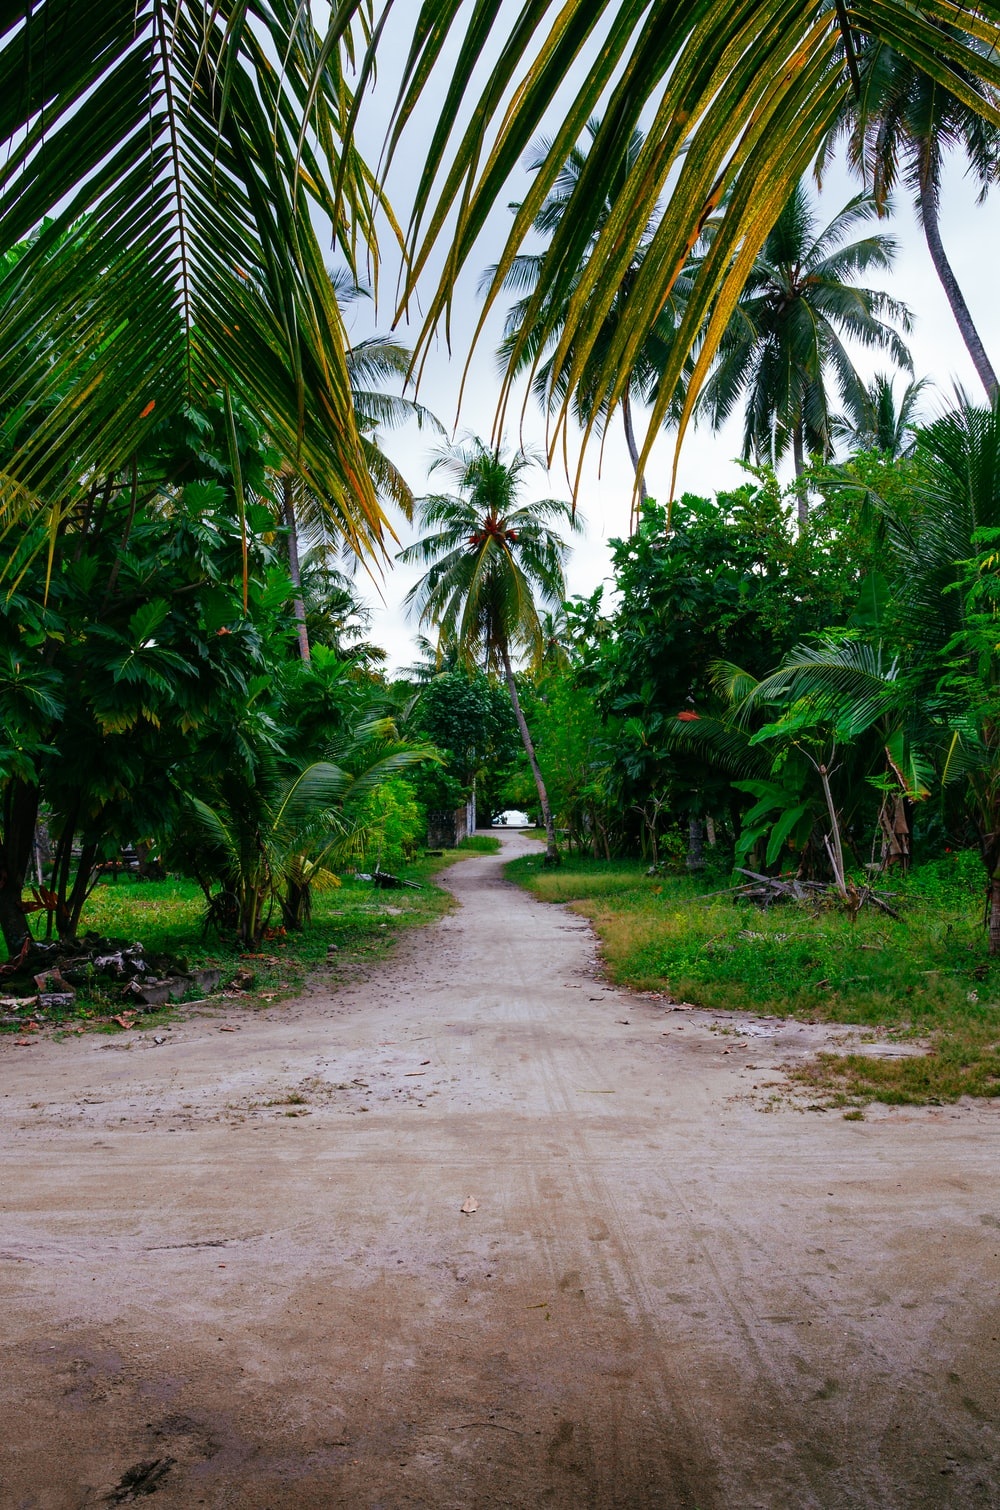 green palm trees near road during daytime